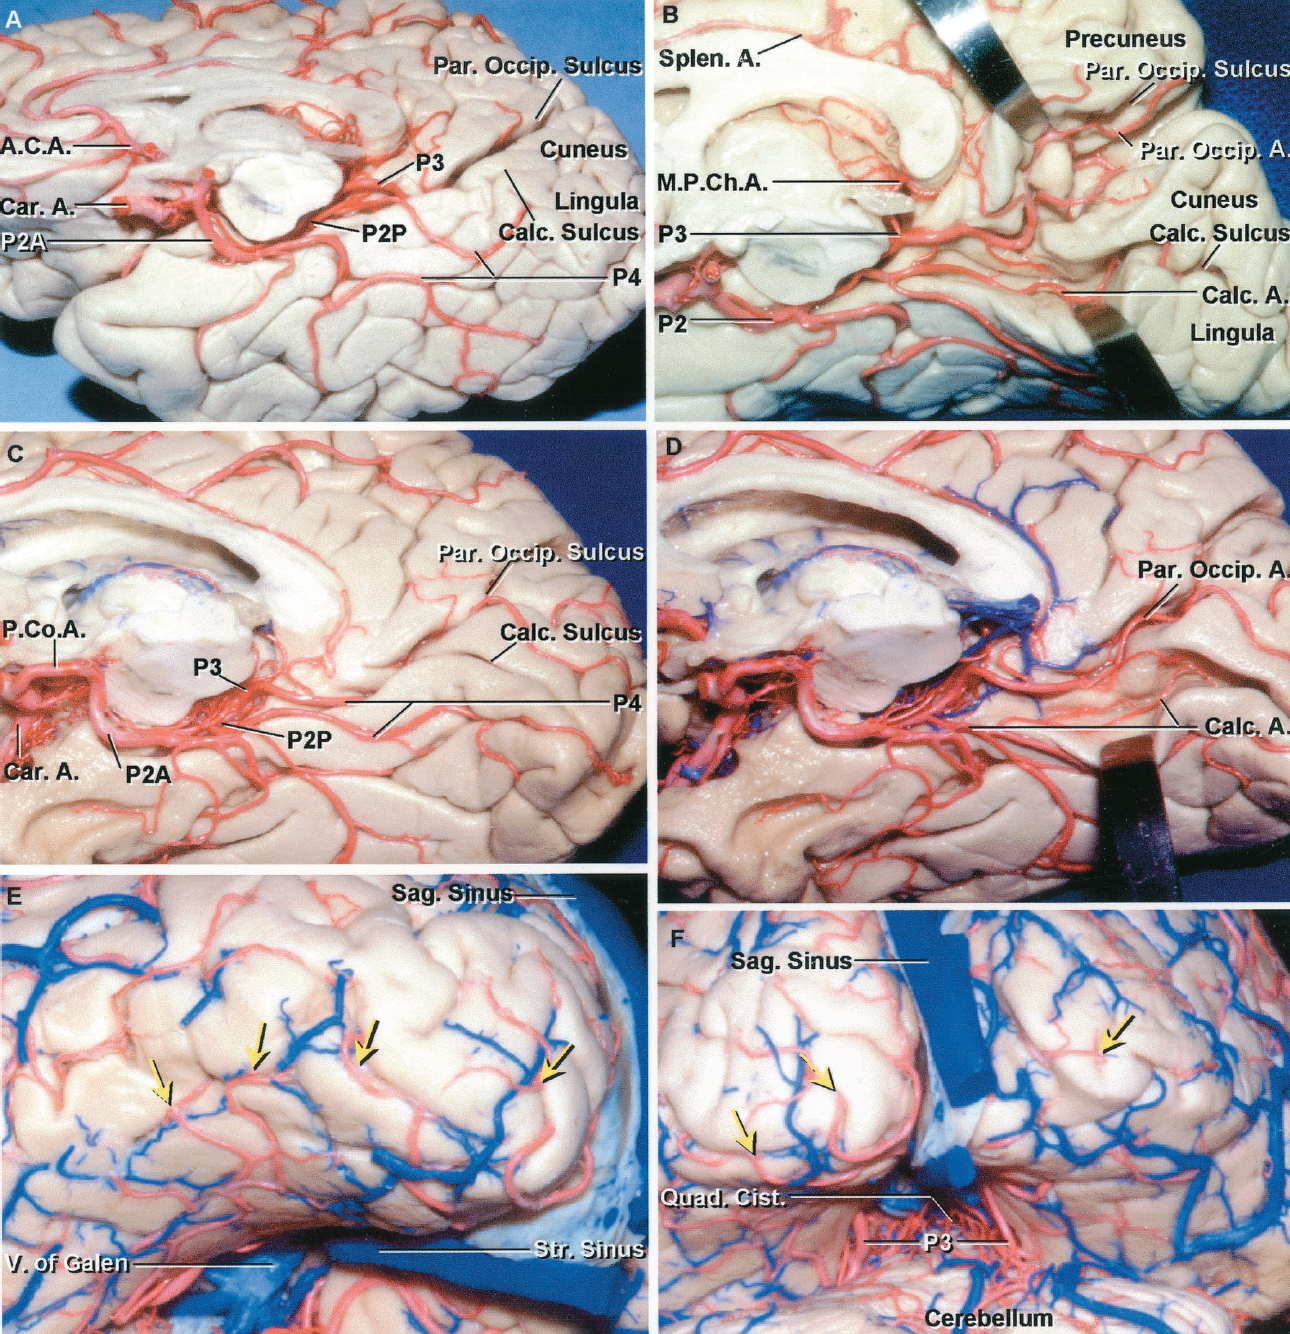 FIGURE 2.36. Posterior cerebral arteries. A, the P2 divides into a P2A, which passes through the crural cistern located between the posterior segment of the uncus and the cerebral peduncle, and a P2P, which courses through the ambient cistern, located below the lateral midbrain and parahippocampal gyrus. The P3 passes through the quadrigeminal cistern where it gives rise to the P4 formed by the cortical branches, including the parieto-occipital and calcarine arteries that course in the parieto-occipital and calcarine sulci where they are commonly hidden between the sulcal lips. B, the lips of the parieto-occipital and calcarine sulci have been retracted to expose the parieto-occipital and calcarine branches coursing along the sulci. A MPChA encircles the brainstem to reach the third ventricular roof. The cuneus forms the upper lip and the lingula forms the lower lip of the calcarine sulcus. The precuneus forms the upper lip and the cuneus forms the lower lip of the parieto-occipital sulcus. C, another hemisphere. The terminal branches of the PCA pass posteriorly within the parieto-occipital and calcarine sulci. The arrows are on branches that pass around the occipital pole to reach the adjacent lateral surface. D, the lips of the parieto-occipital and calcarine sulci have been retracted. The parieto-occipital artery courses within its sulcus. The calcarine artery courses just below the calcarine sulcus and gives rise to several small branches that course along the depths of the sulcus. E, posteroinferior view of occipital pole showing the branches (red arrow) of the PCA coursing around the occipital pole to reach the adjacent part of the lateral convexity. F, posterior view of both occipital lobes. The P4 branches course around the posterior and lower border of the occipital lobe to reach the lateral cortical surface. The P3s course on the quadrigeminal cistern. A., artery; A.C.A., anterior cerebral artery; Calc., calcarine; Car., carotid; Cist., cistern; M.P.Ch.A.,